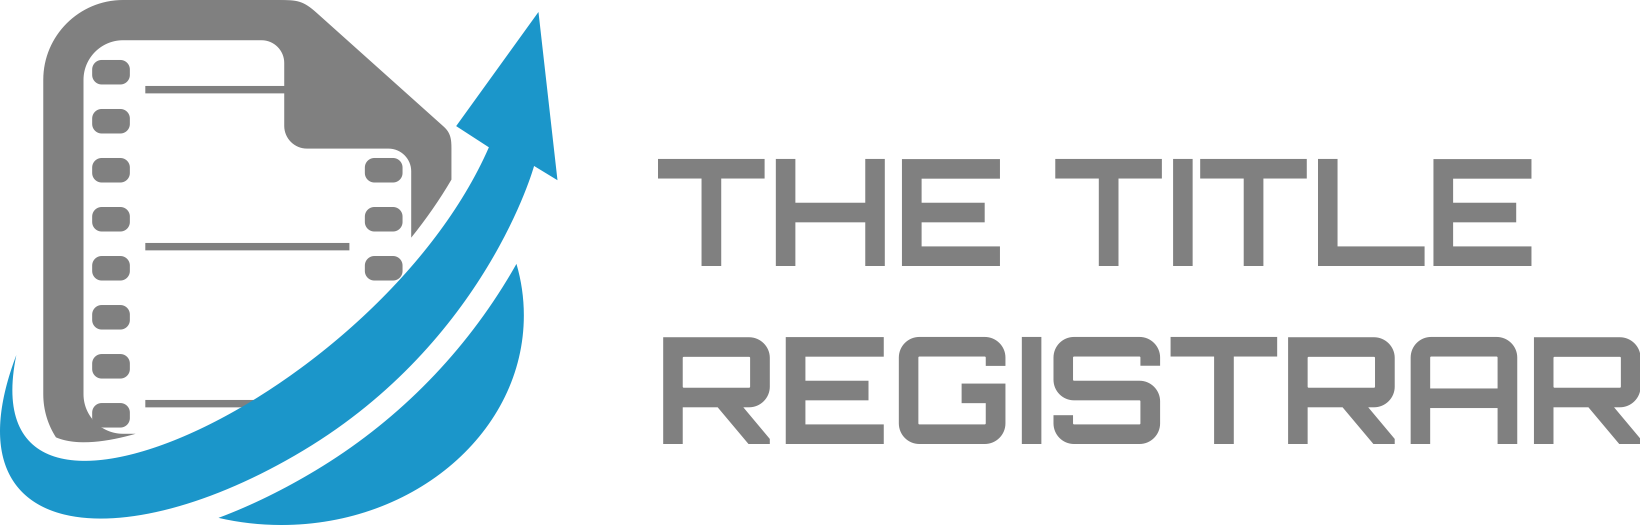 The Title Registrar Help Center home page